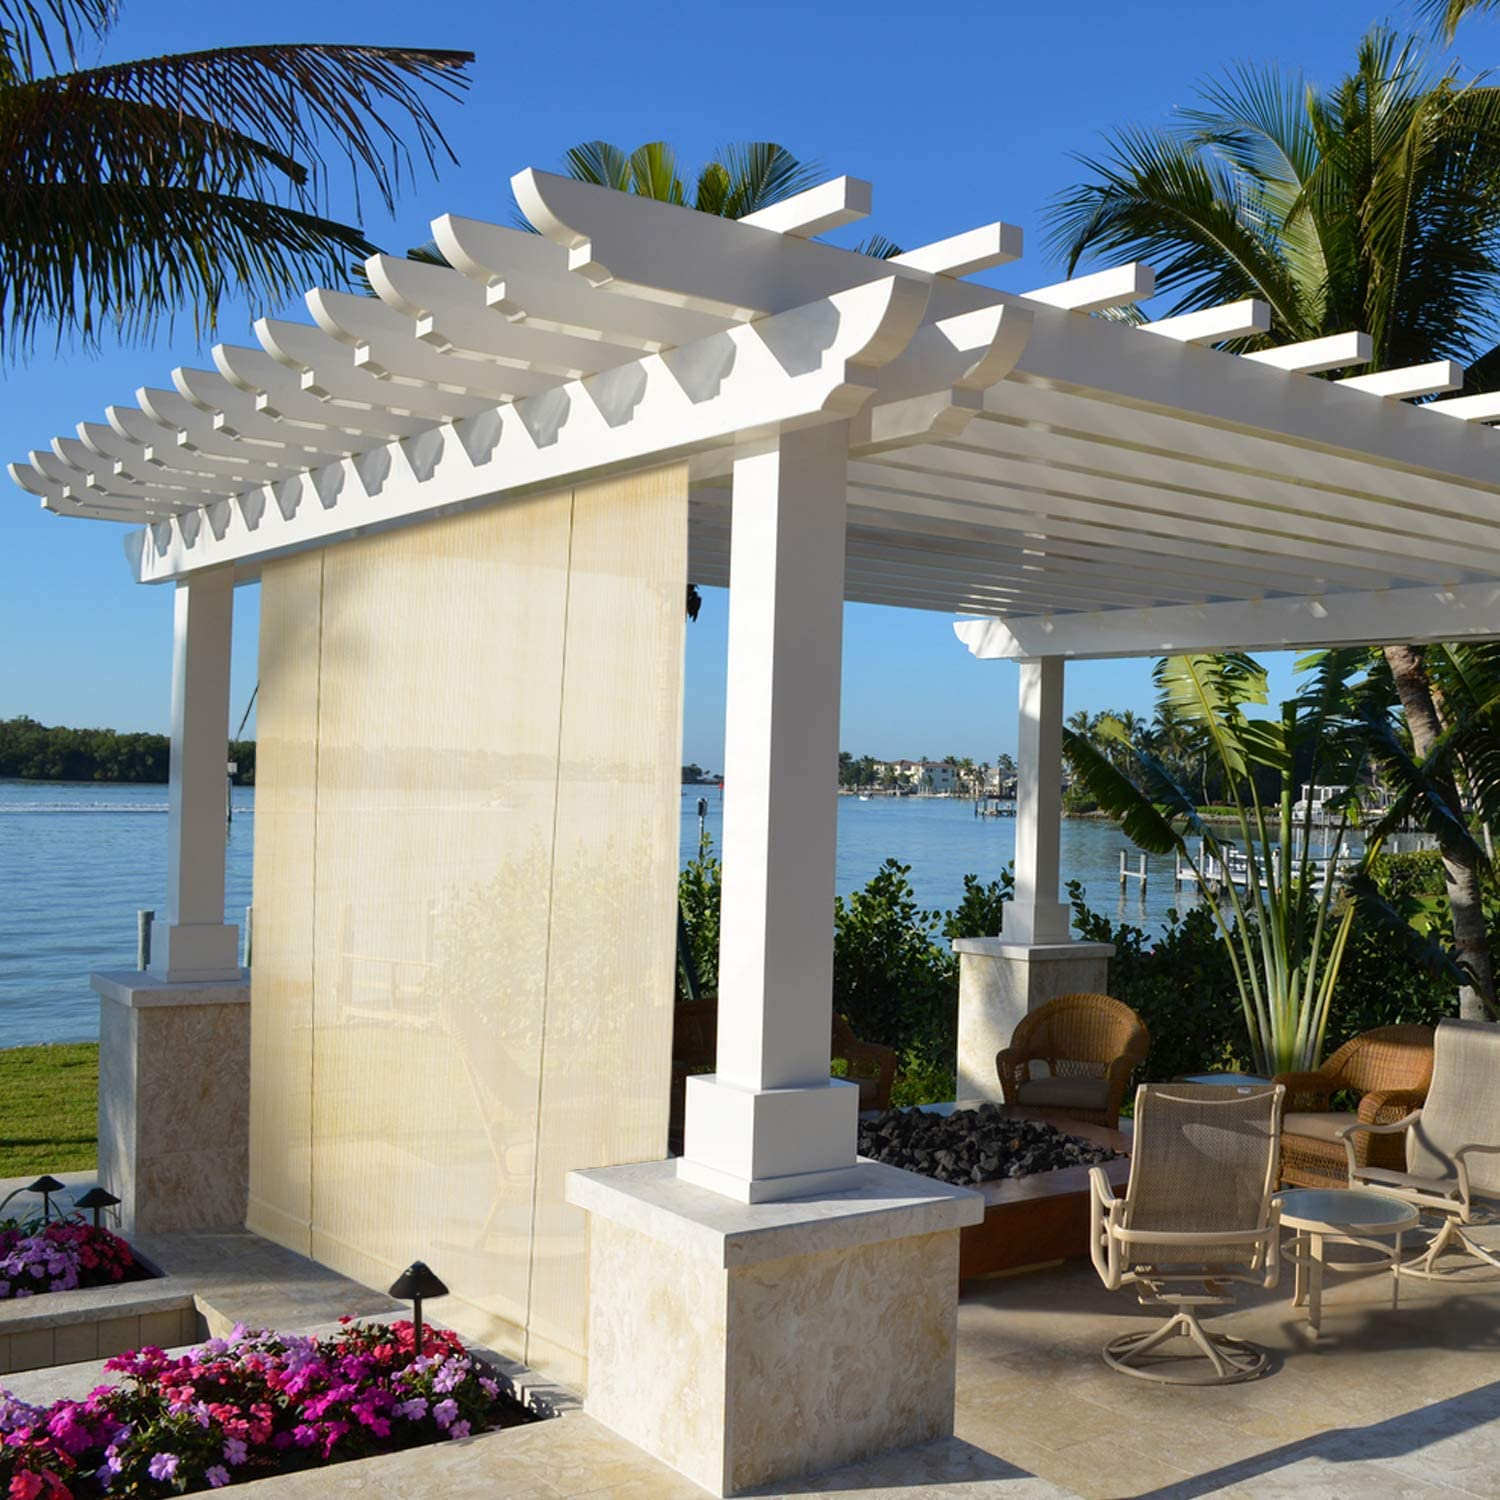 TANG Sunshades Depot Exterior Roller Shade Roll up Shade for Patio Deck Porch Pergola Balcony Backyard Patio